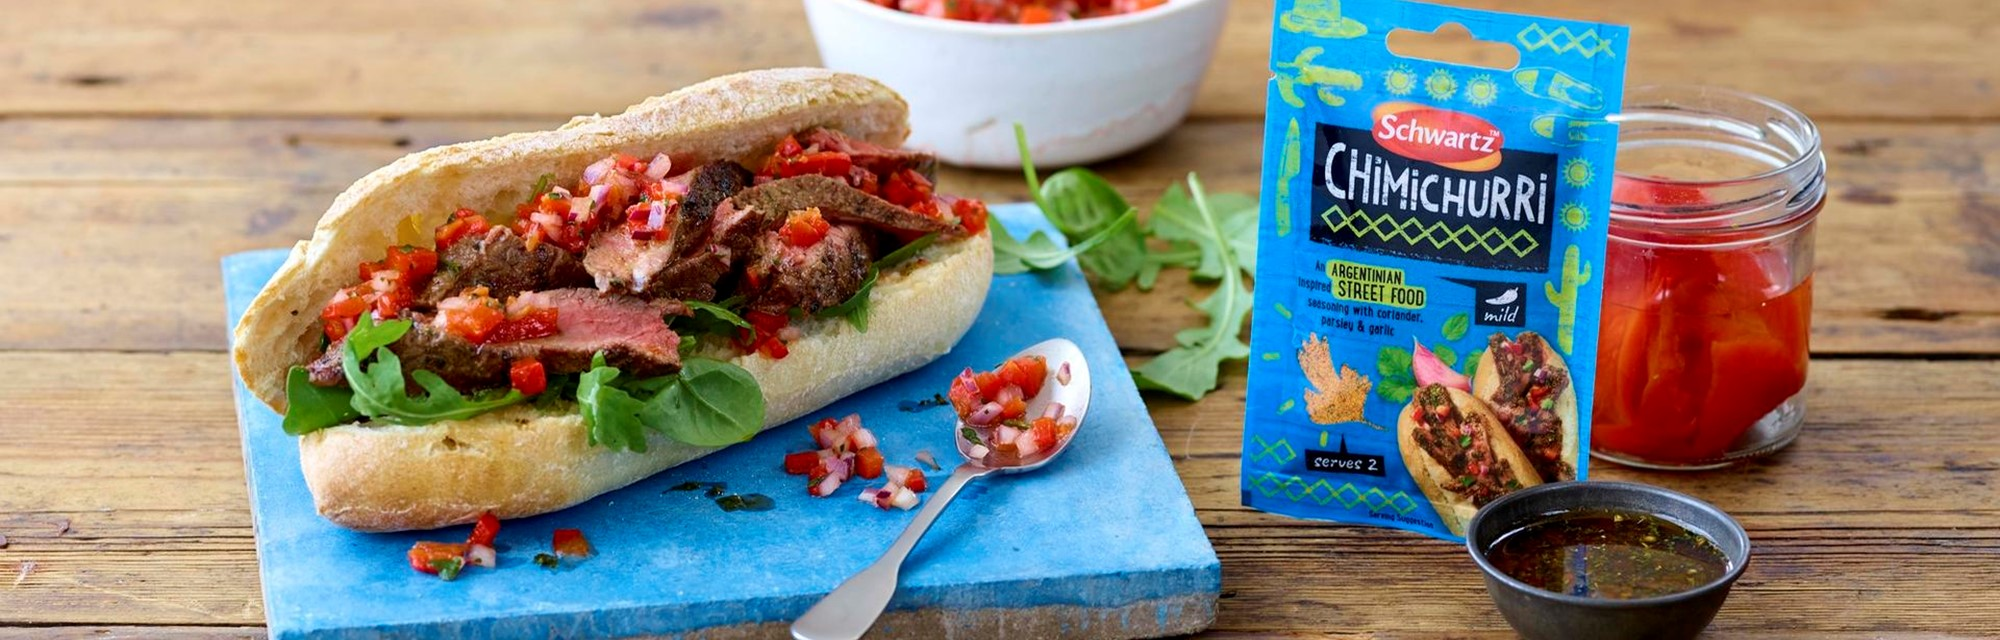 Header - Chimichurri Steak Snadwich